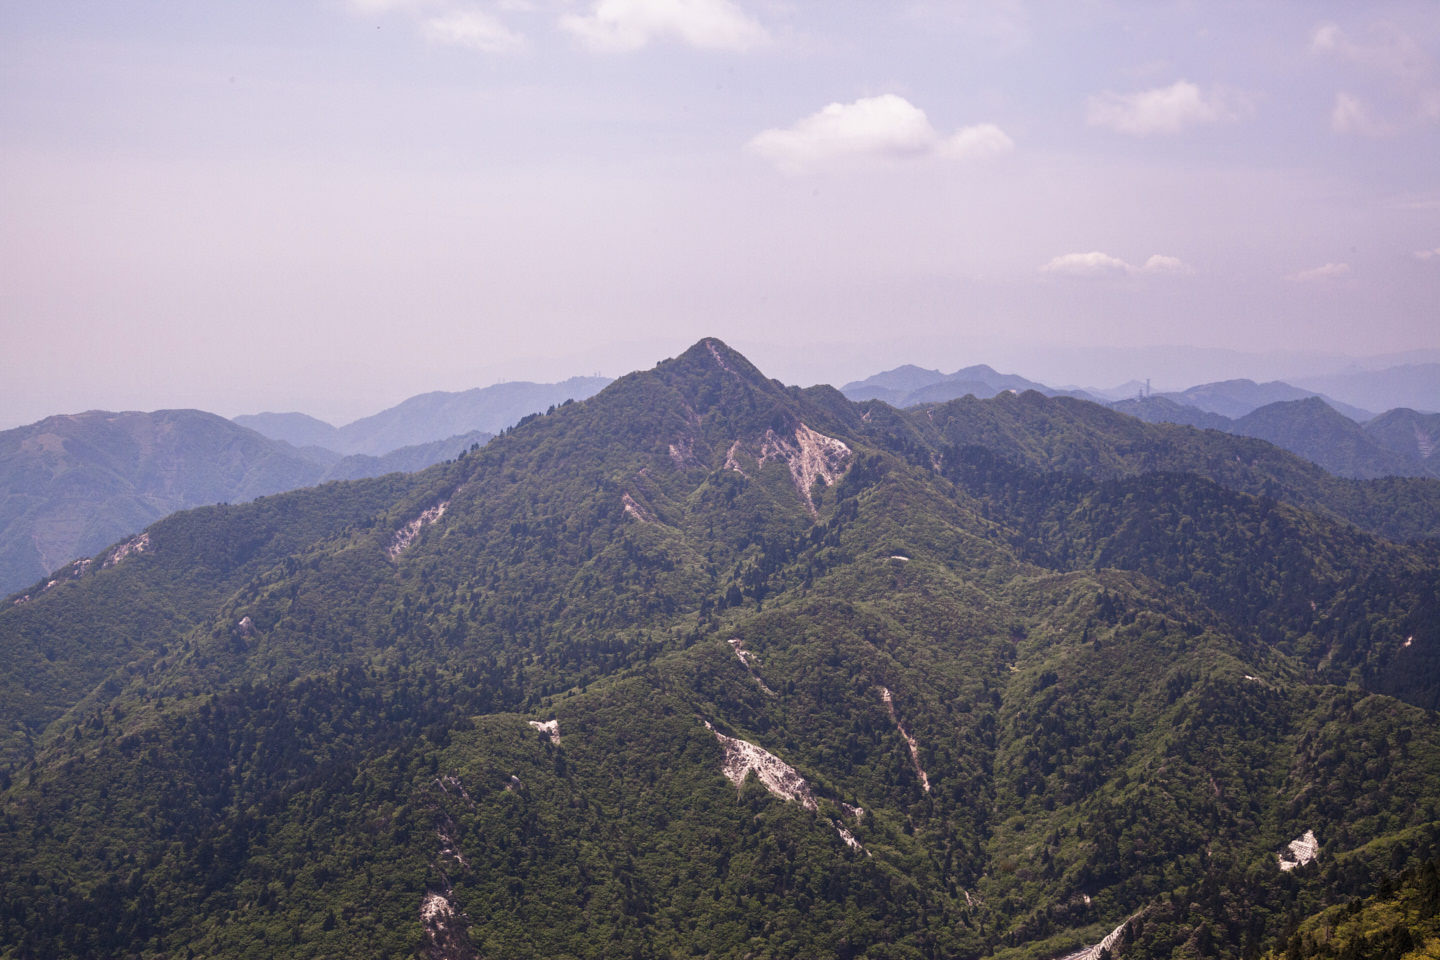 The dusty pyrimidial peak of Kamagatake rises out of thick green vegetation